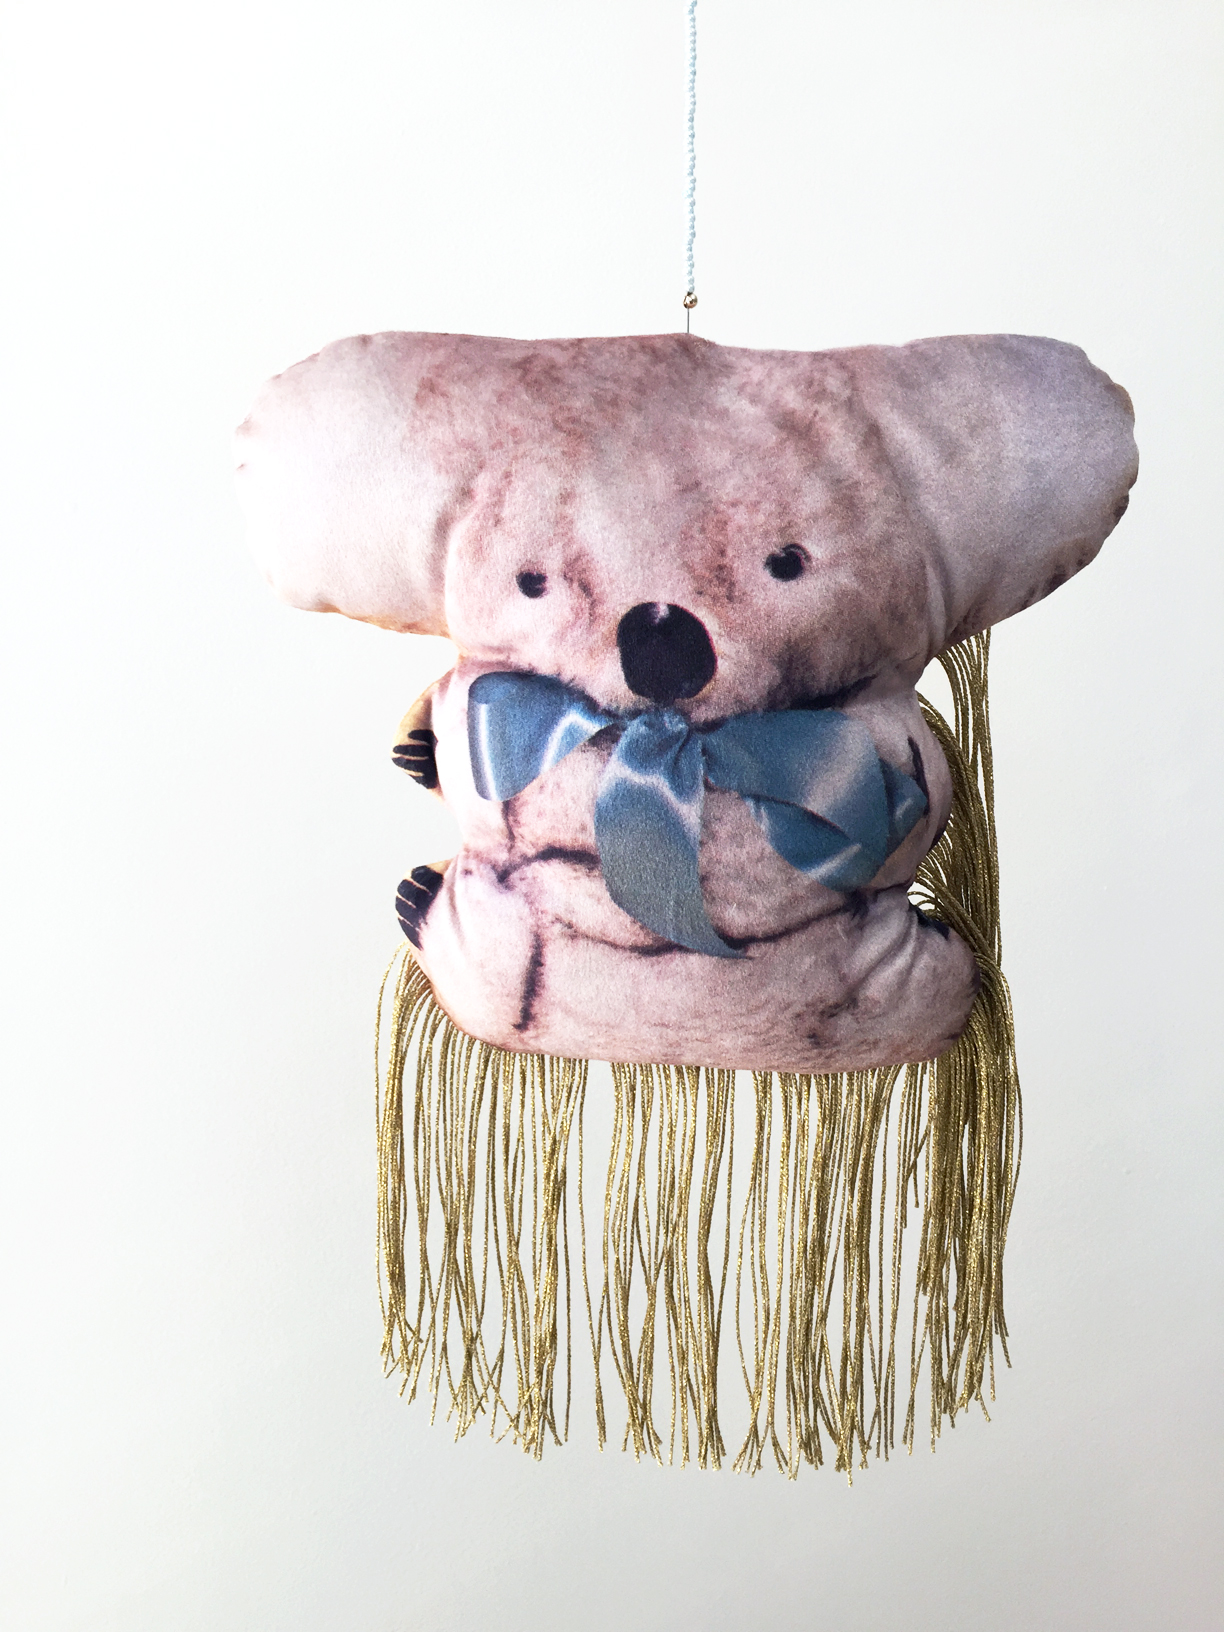 (How to) Make a Koala #2, 2019, digitally printed velvet, found image, polyester, wool, glass beads